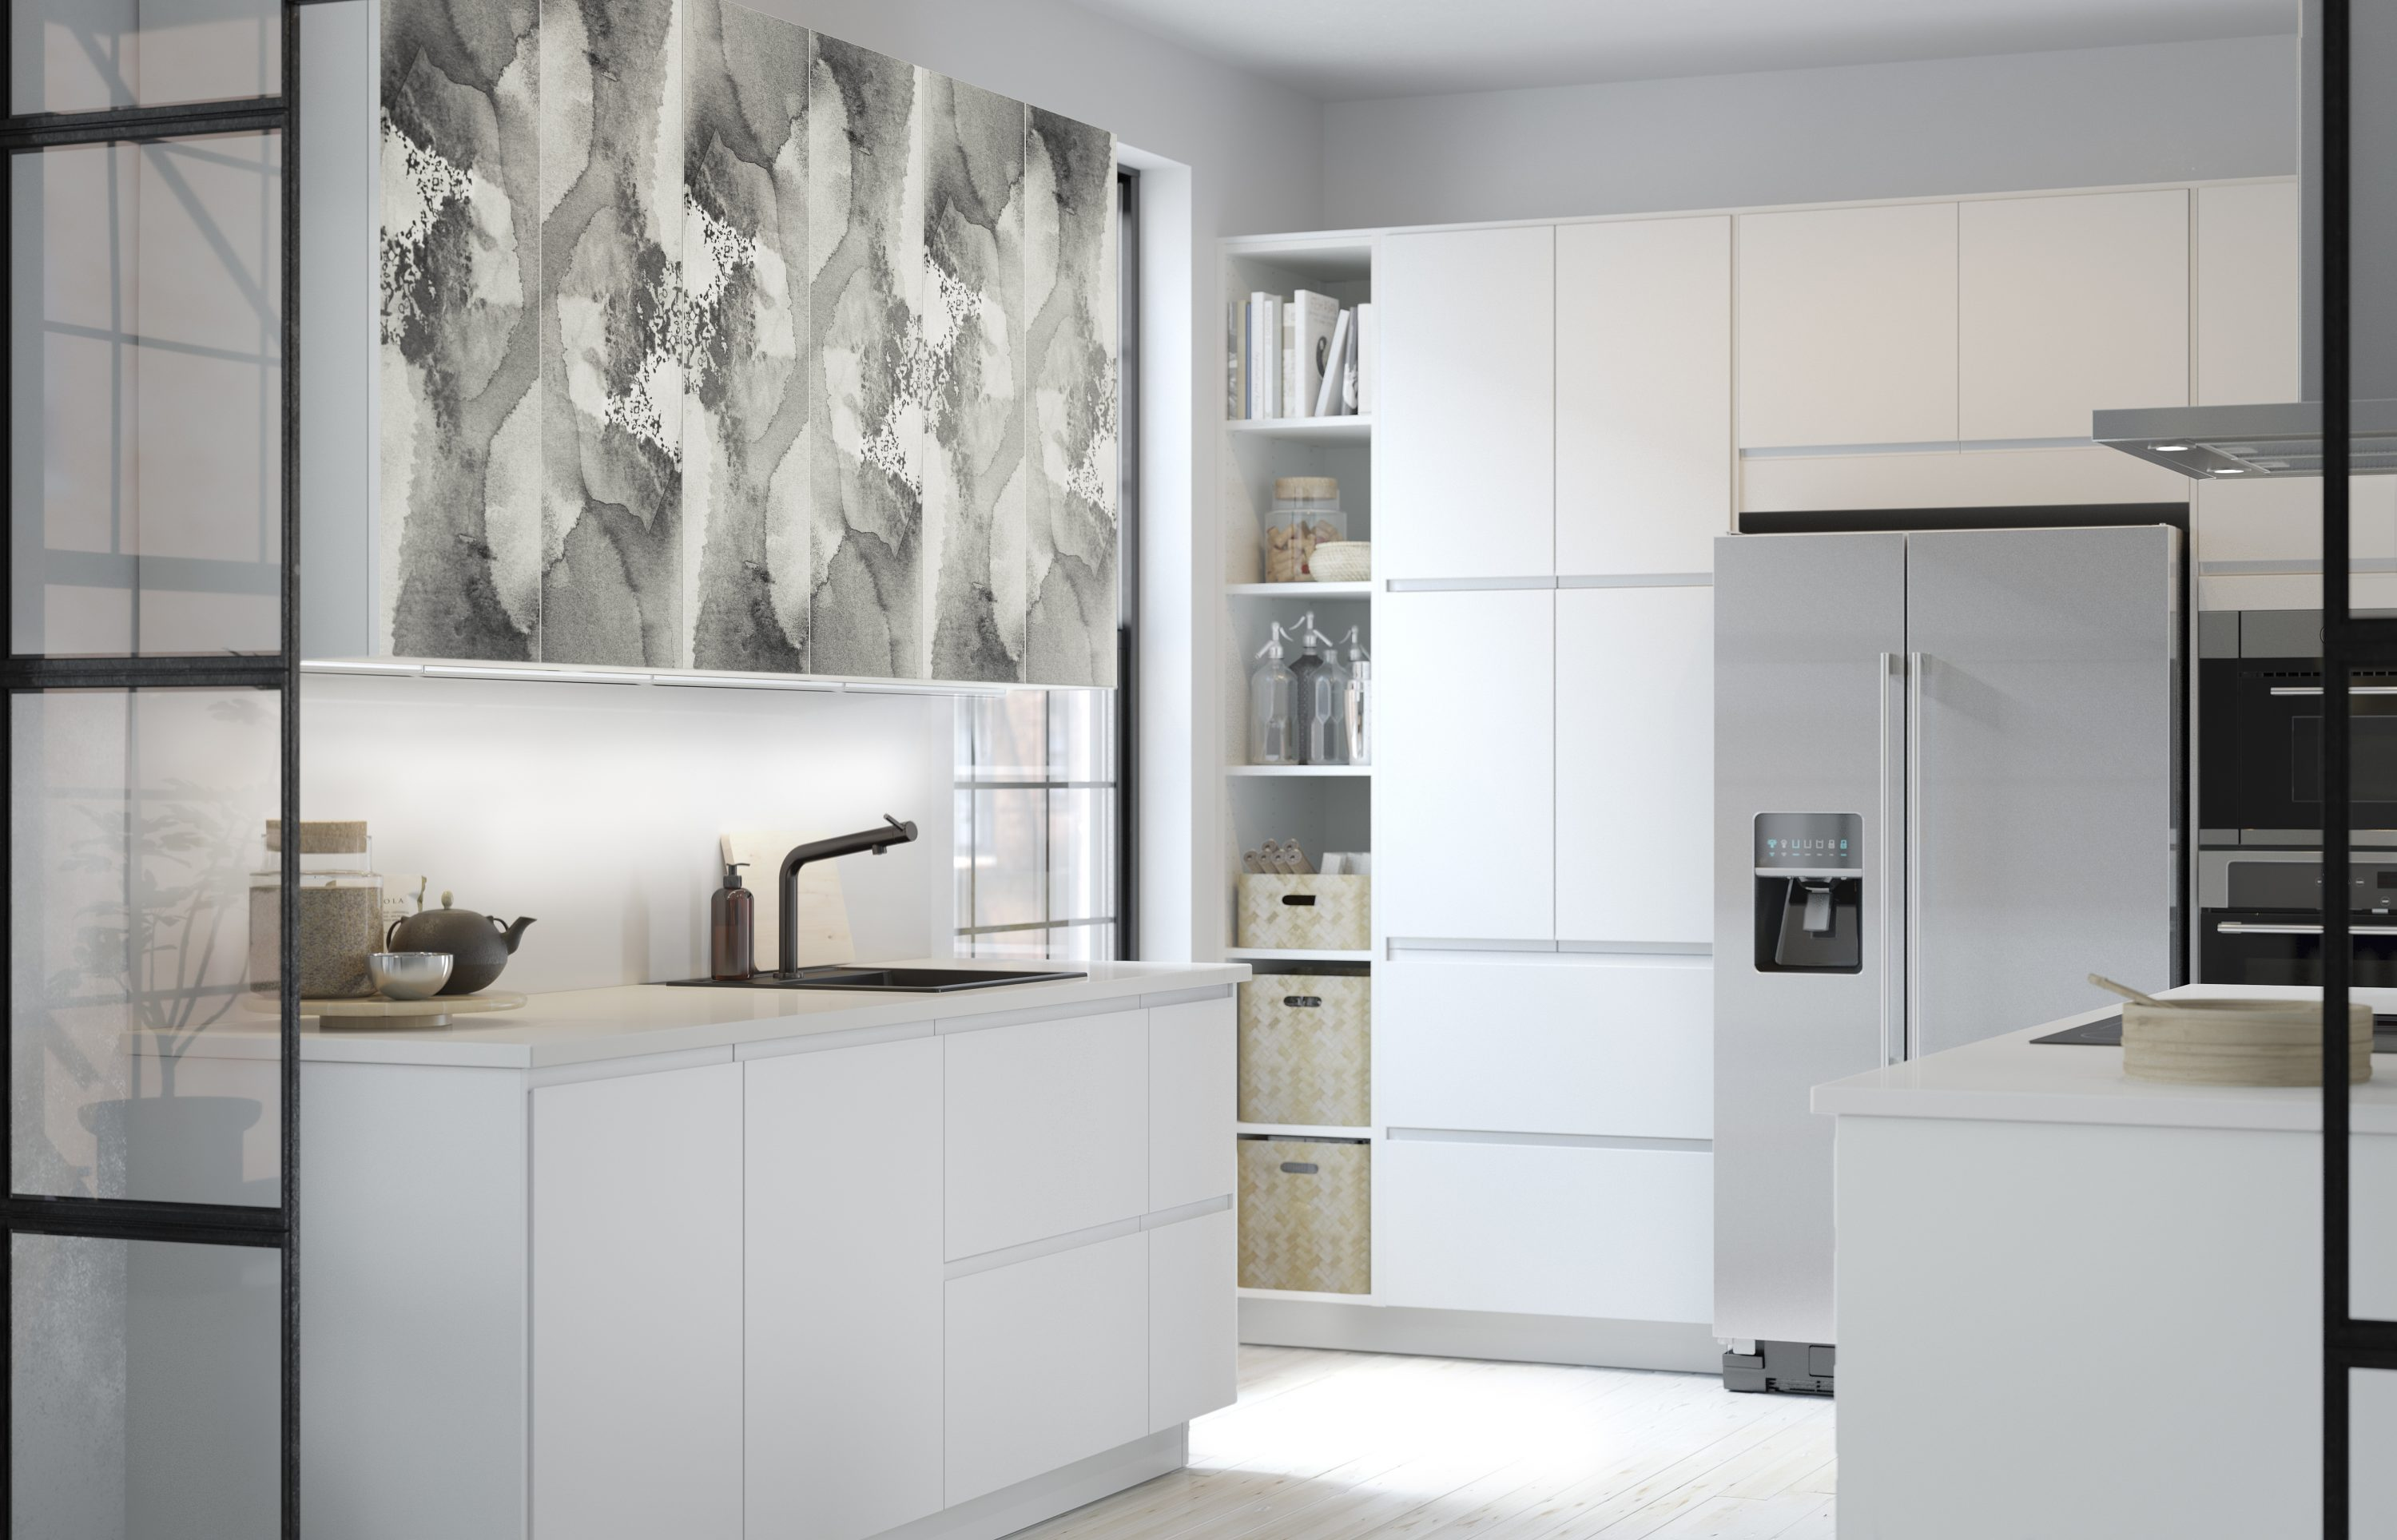 IKEAs New Fashion Inspired Range Brings Art Into The Kitchen